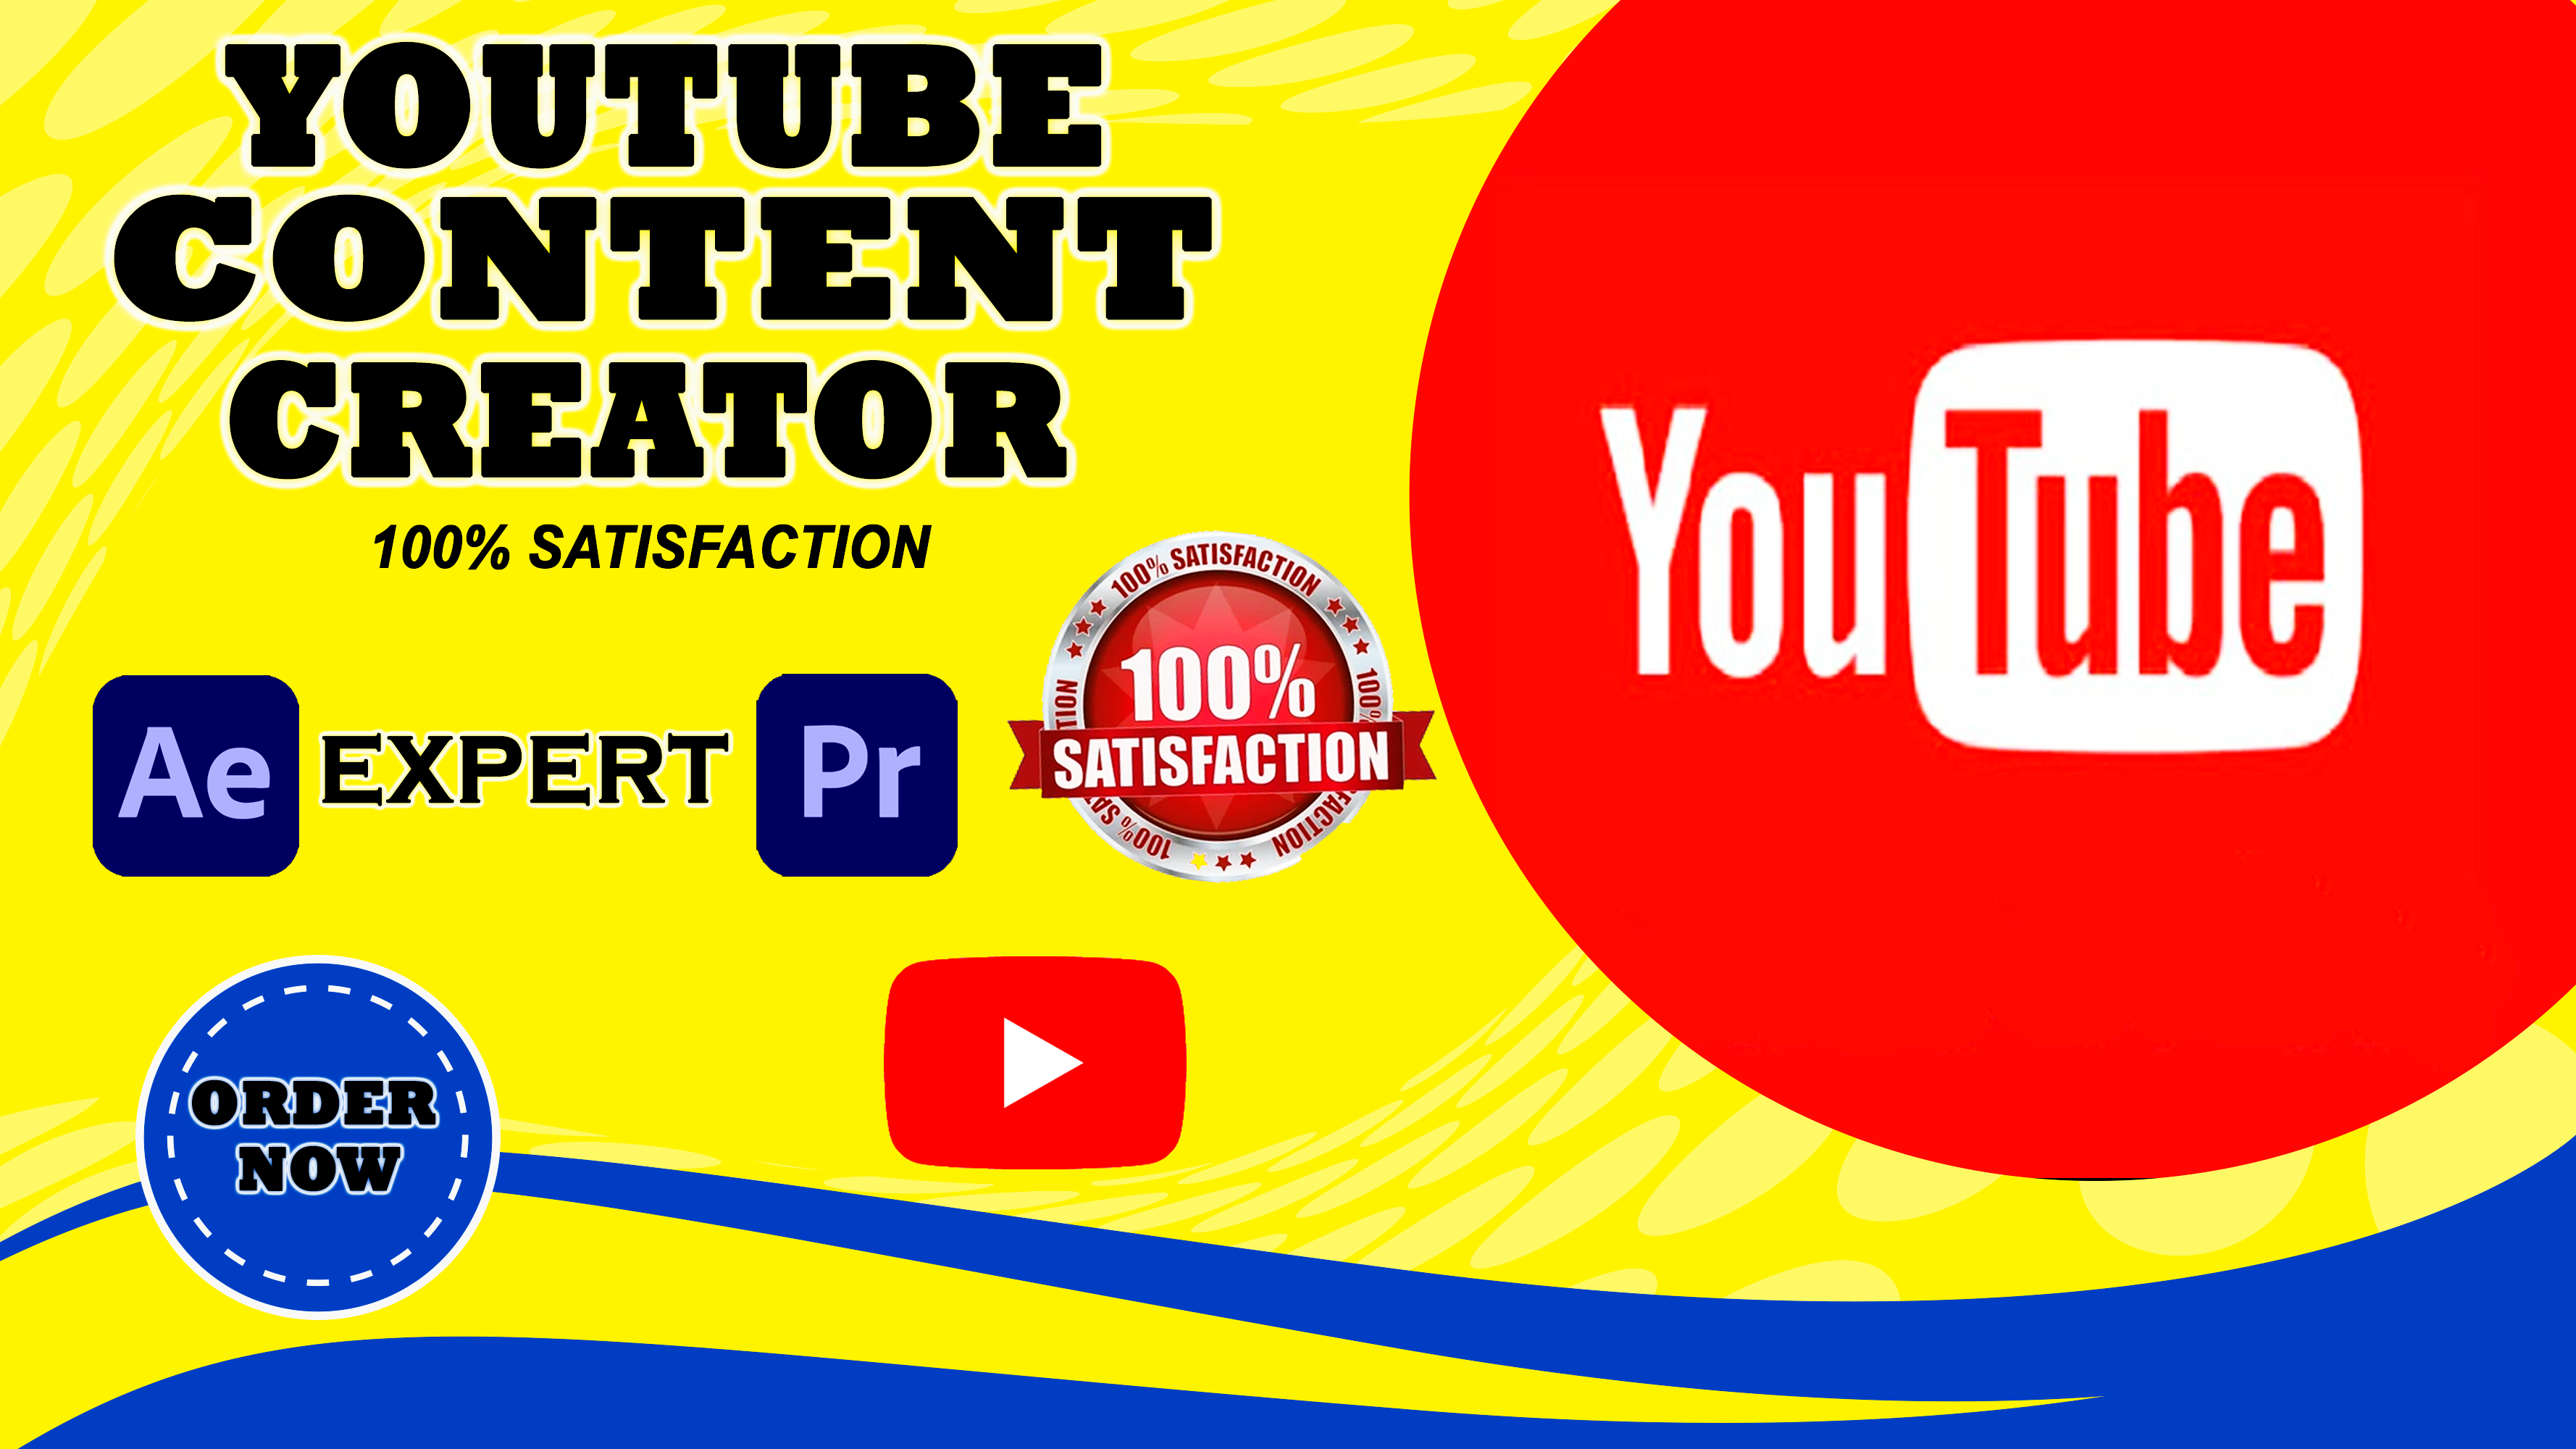 I will professional youtube content creator for you, FiverrBox